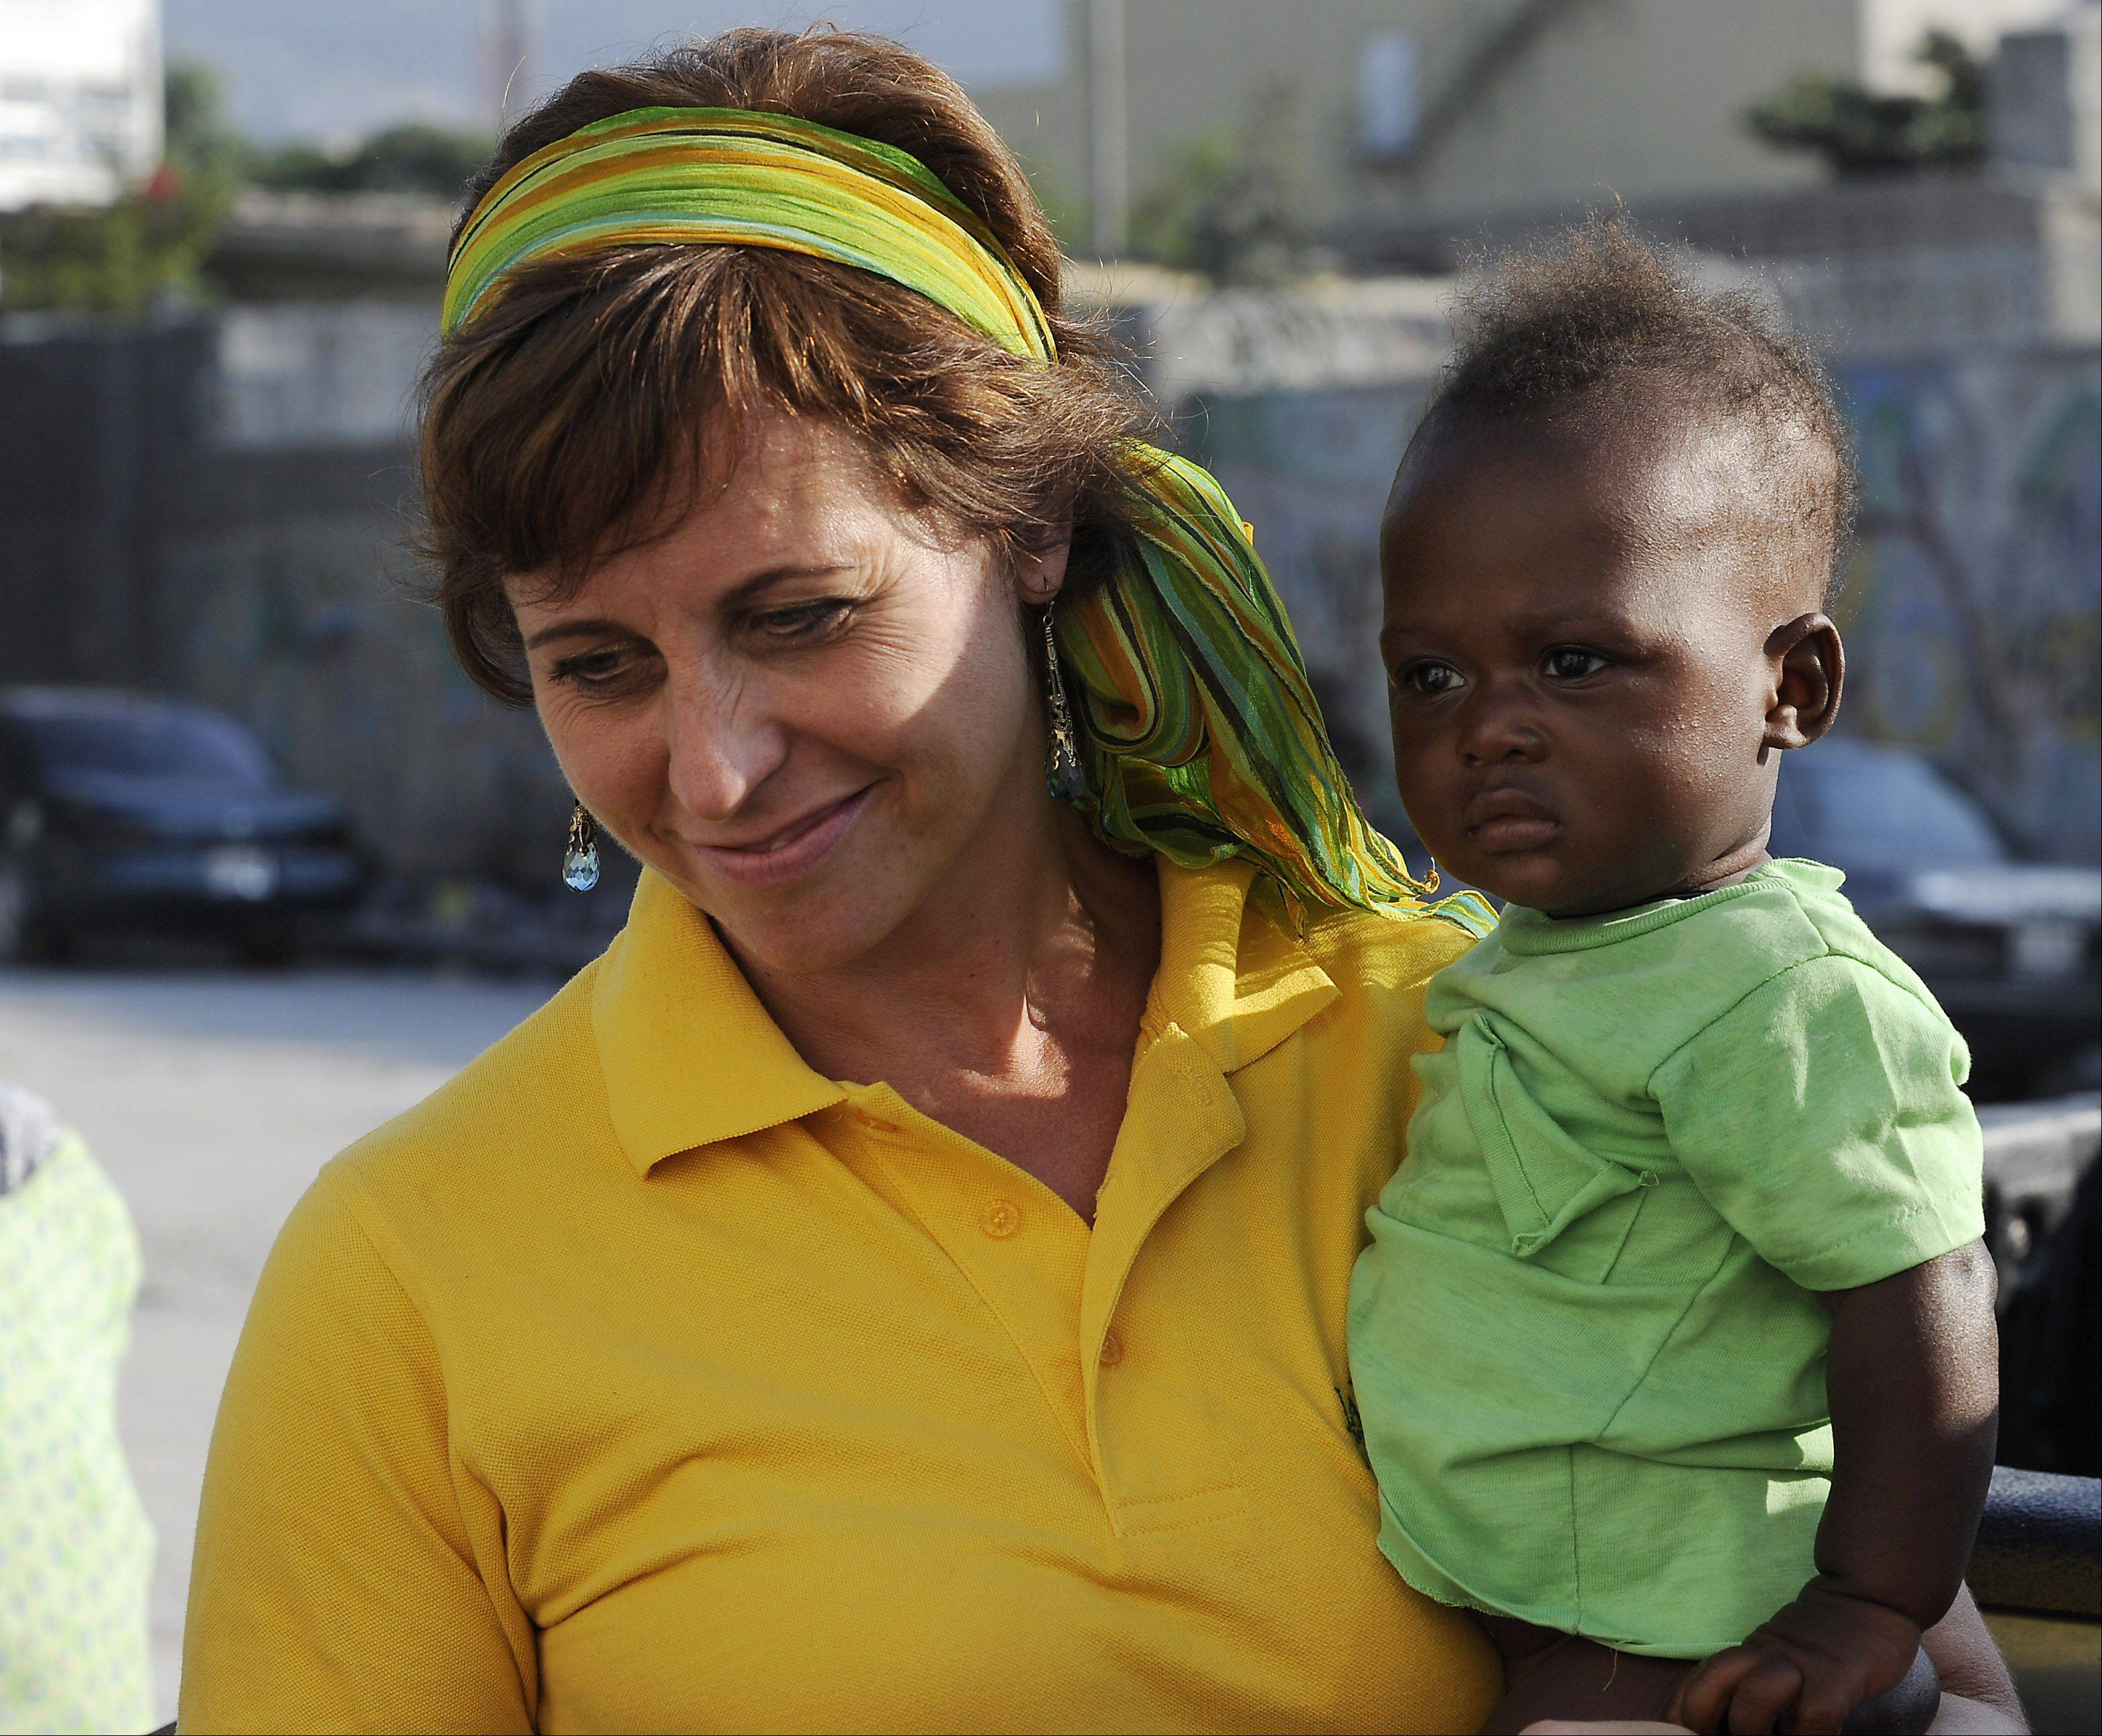 FilterPure Director Lisa Ballantine, formerly of Elk Grove Village, poses with a Haitian child in Port-au-Prince. Ballantine's charity provides sustainable water filters to help people in Haiti and the Dominican Republic have clean drinking water.